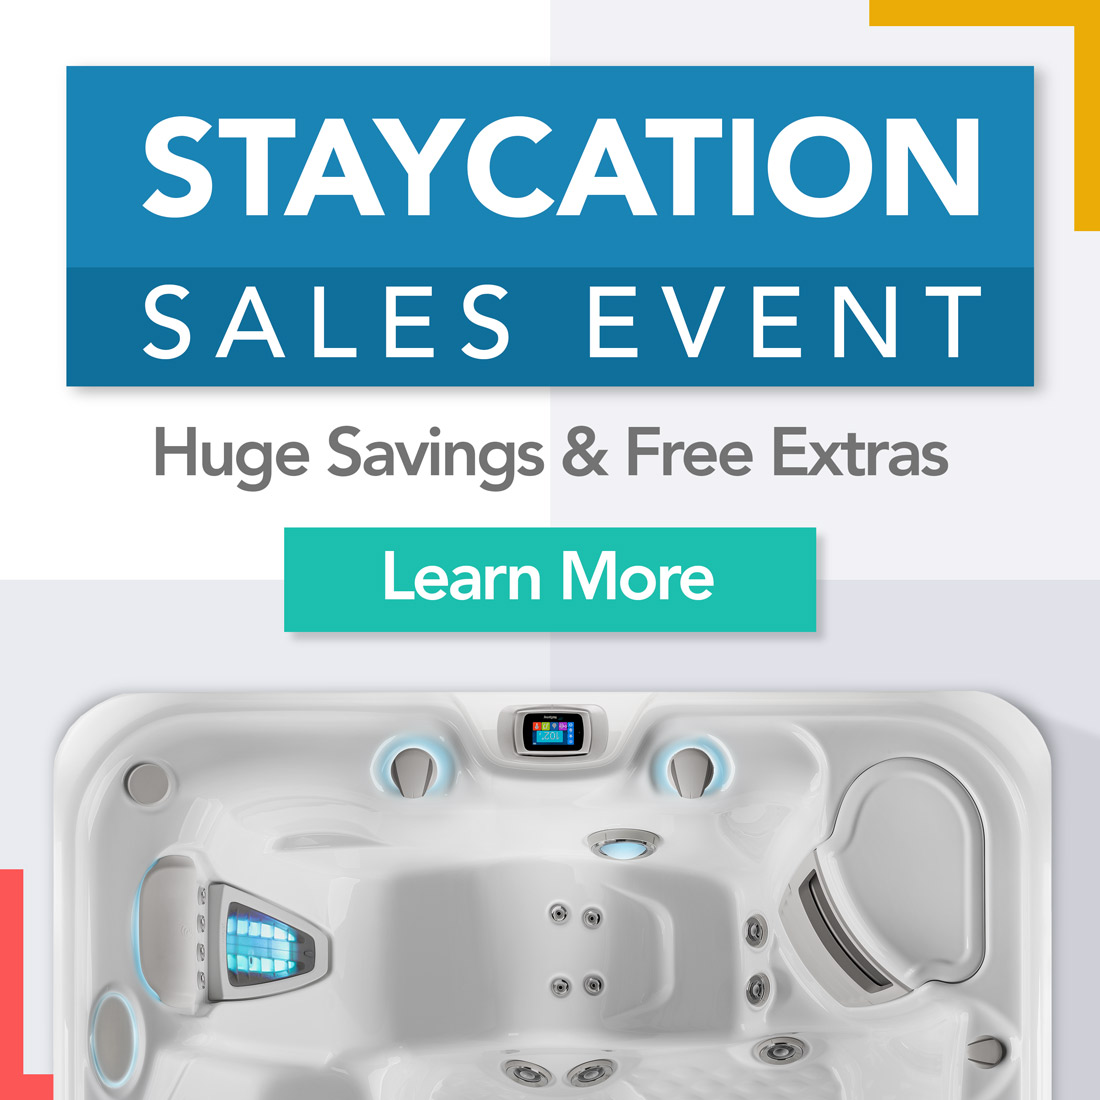 Staycation Sales Event